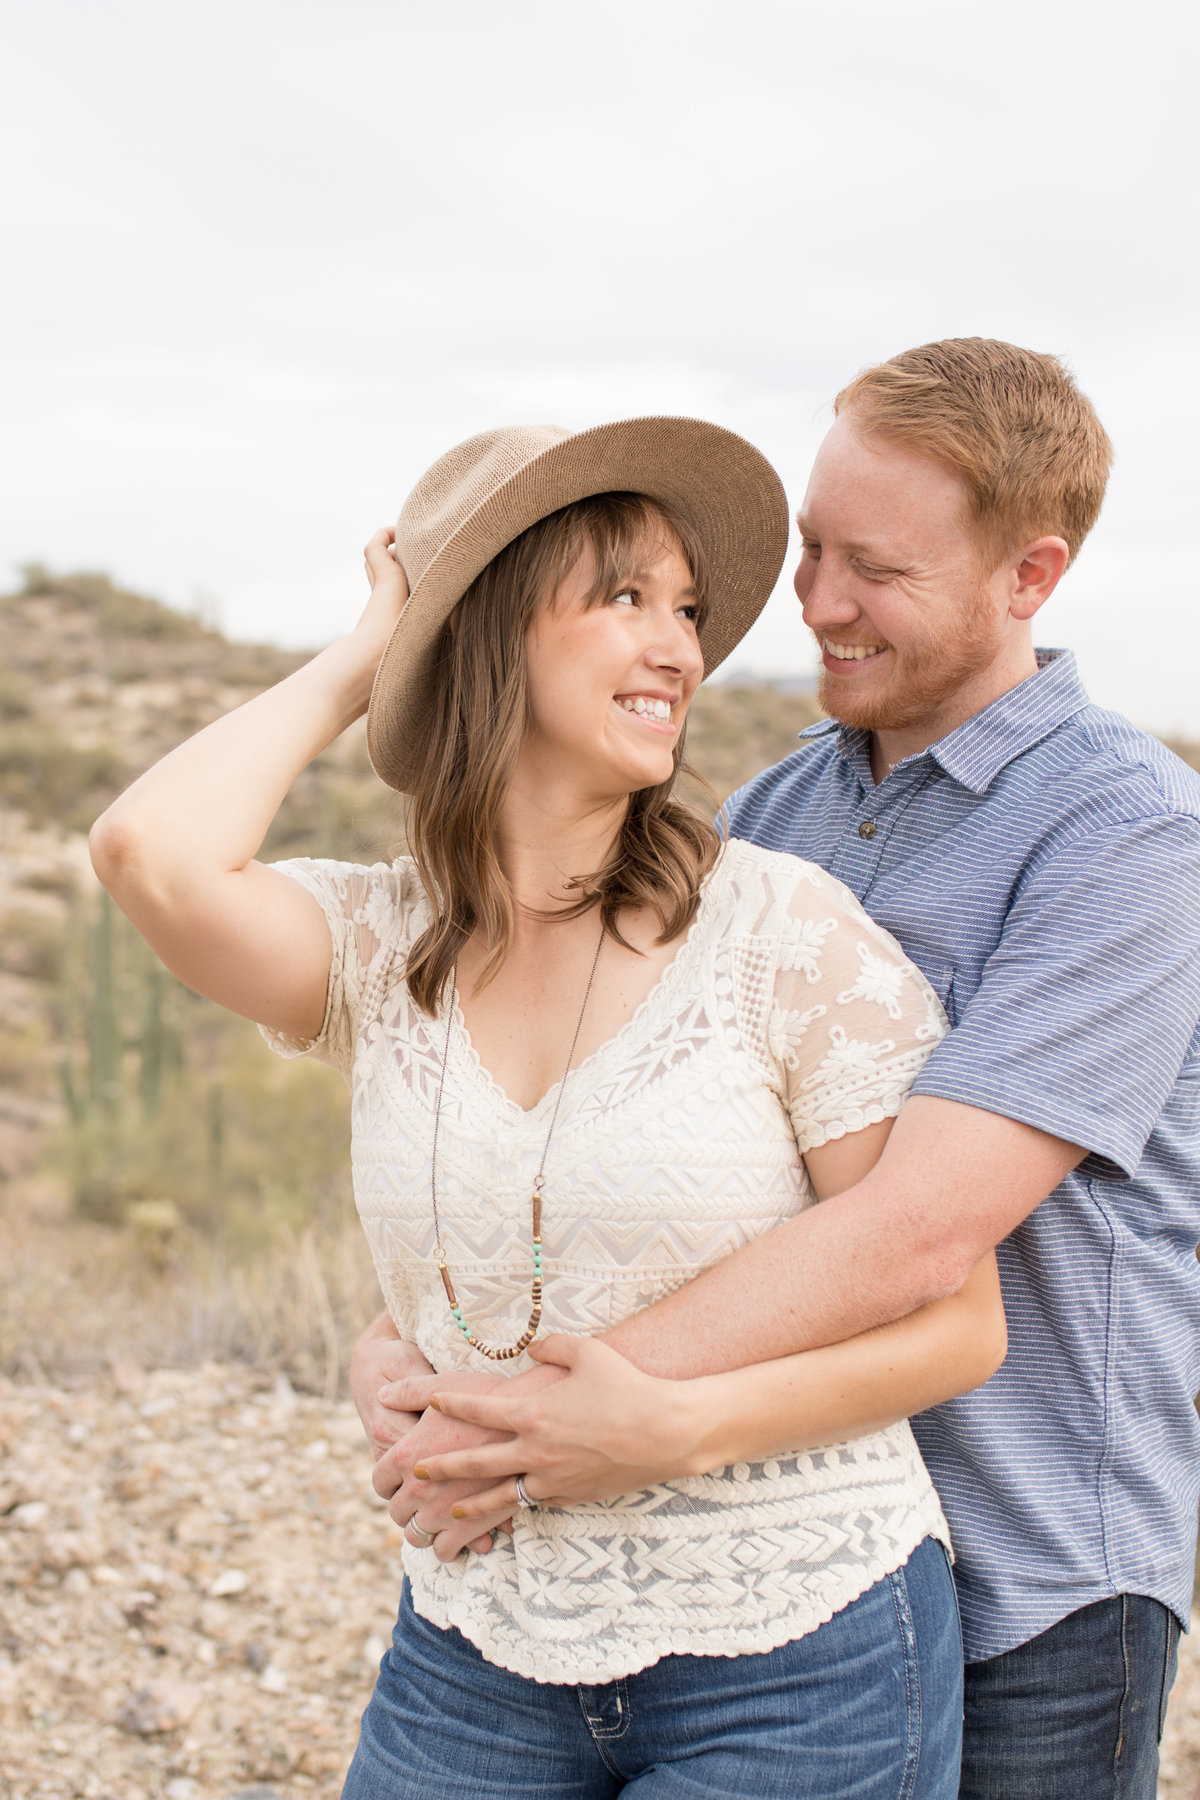 Nikki and Bret's anniversary session in Arizona